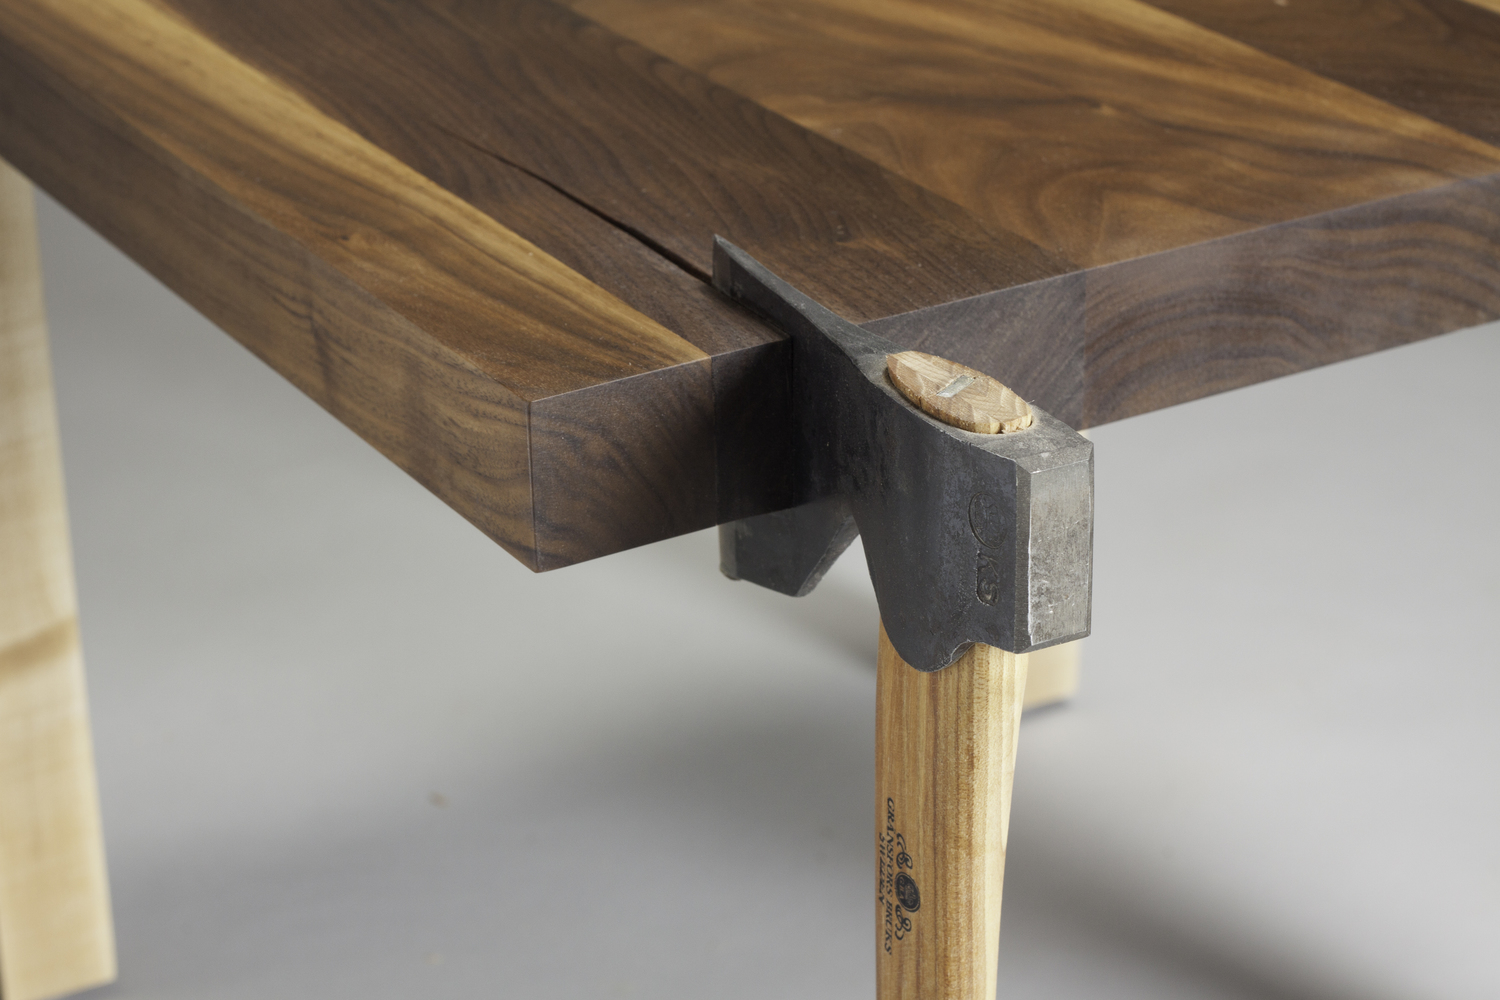 Each Piece Is Crafted From A Combination Of Black Walnut With Maple Legs  And A Swedish Gränsfors Axe For The Striking Finished Product You See  Before You ...